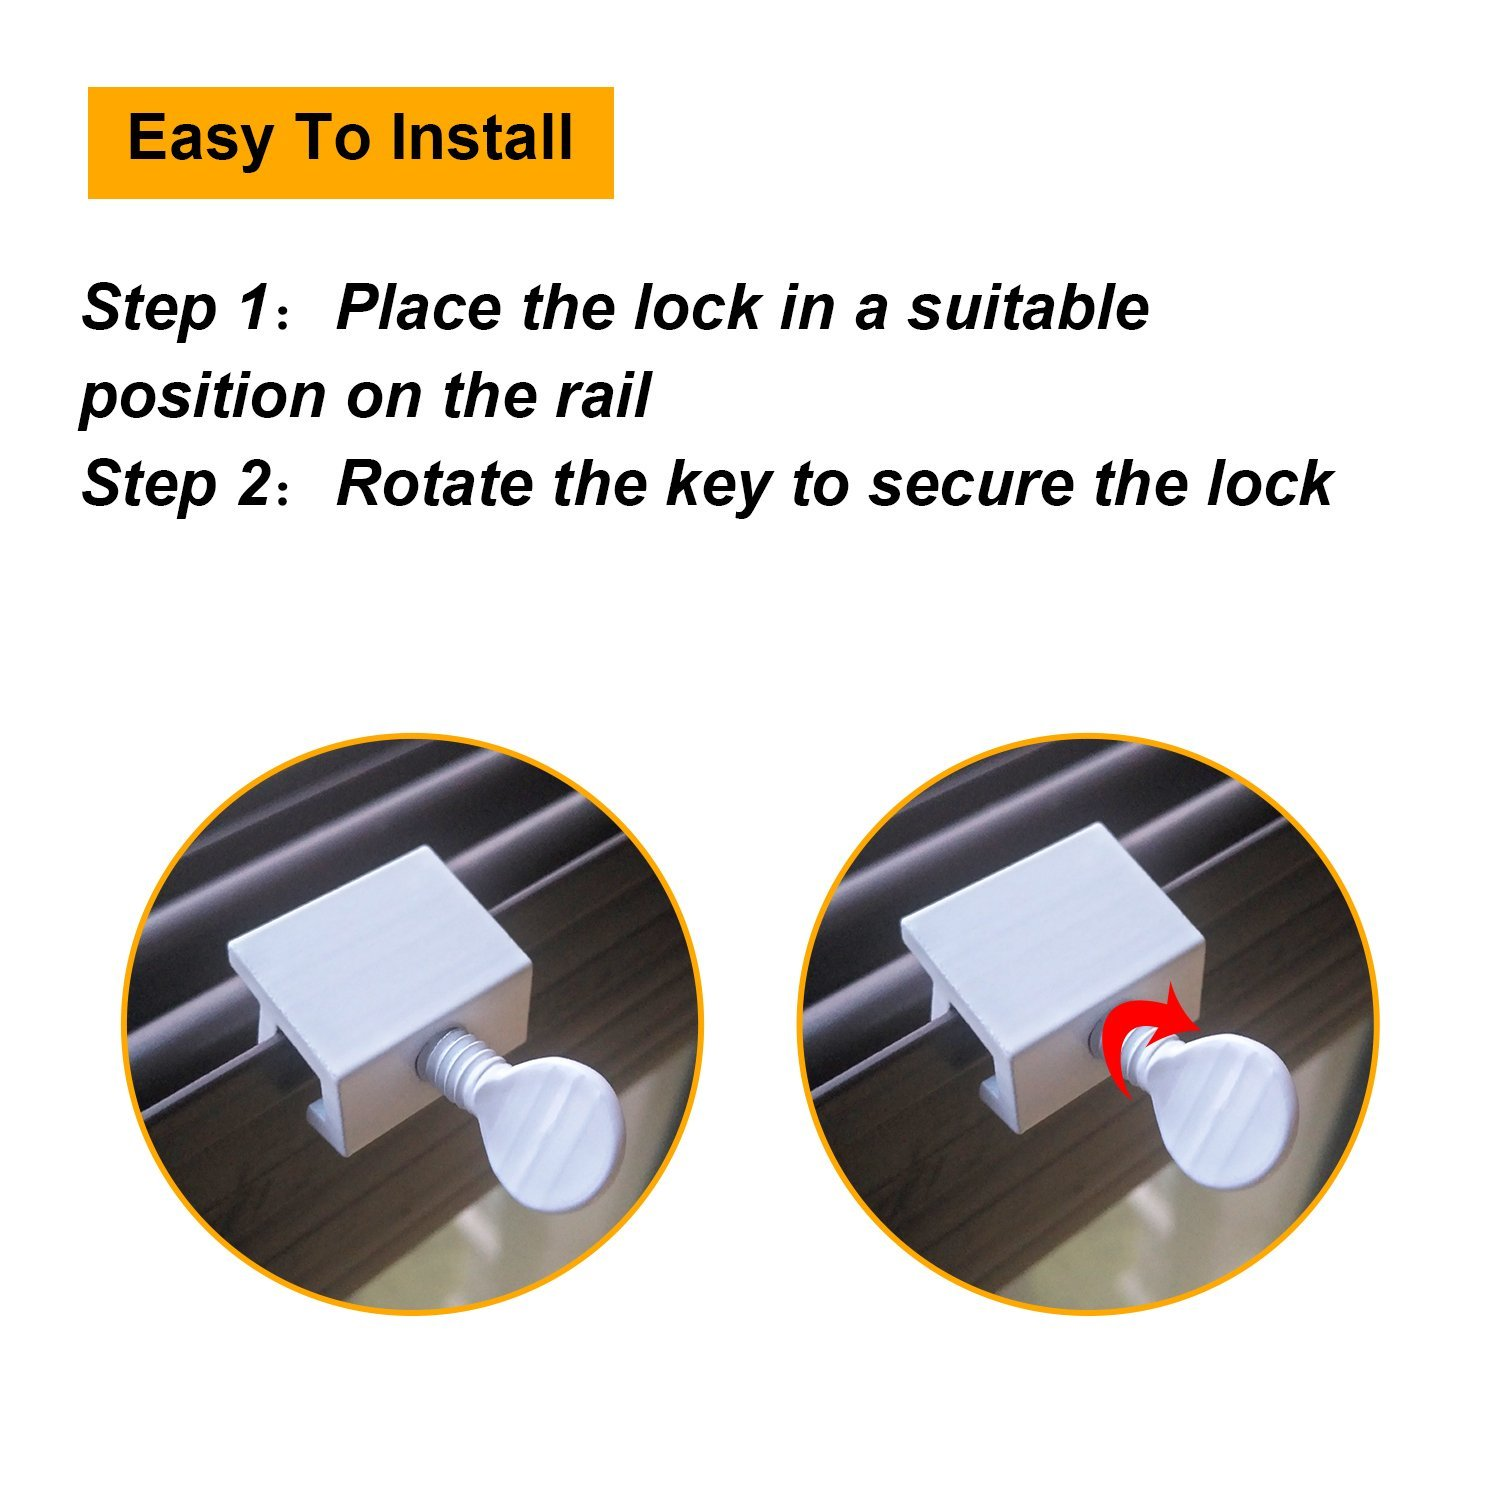 Boao Set of 15 Siding Window Locks Door Locks Adjustable Security Locks with Keys (White) by Boao (Image #3)